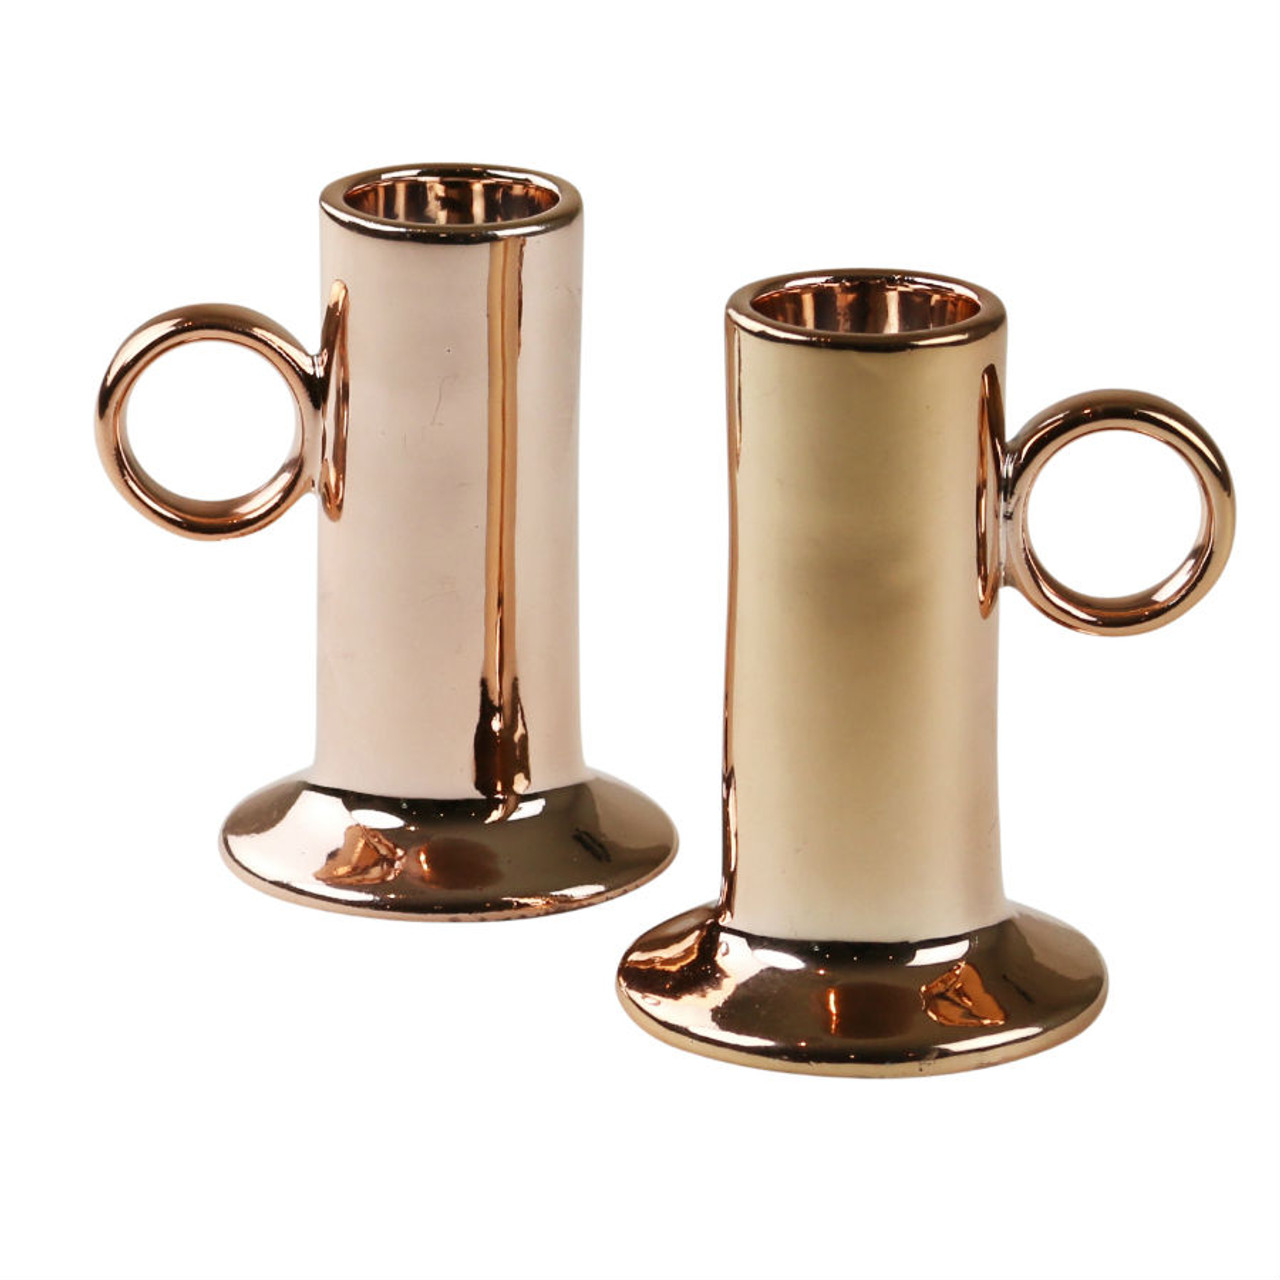 Robert Gordon   Candle Holders (pair)   Copper And Ceramic Collection Copper  Glazed On